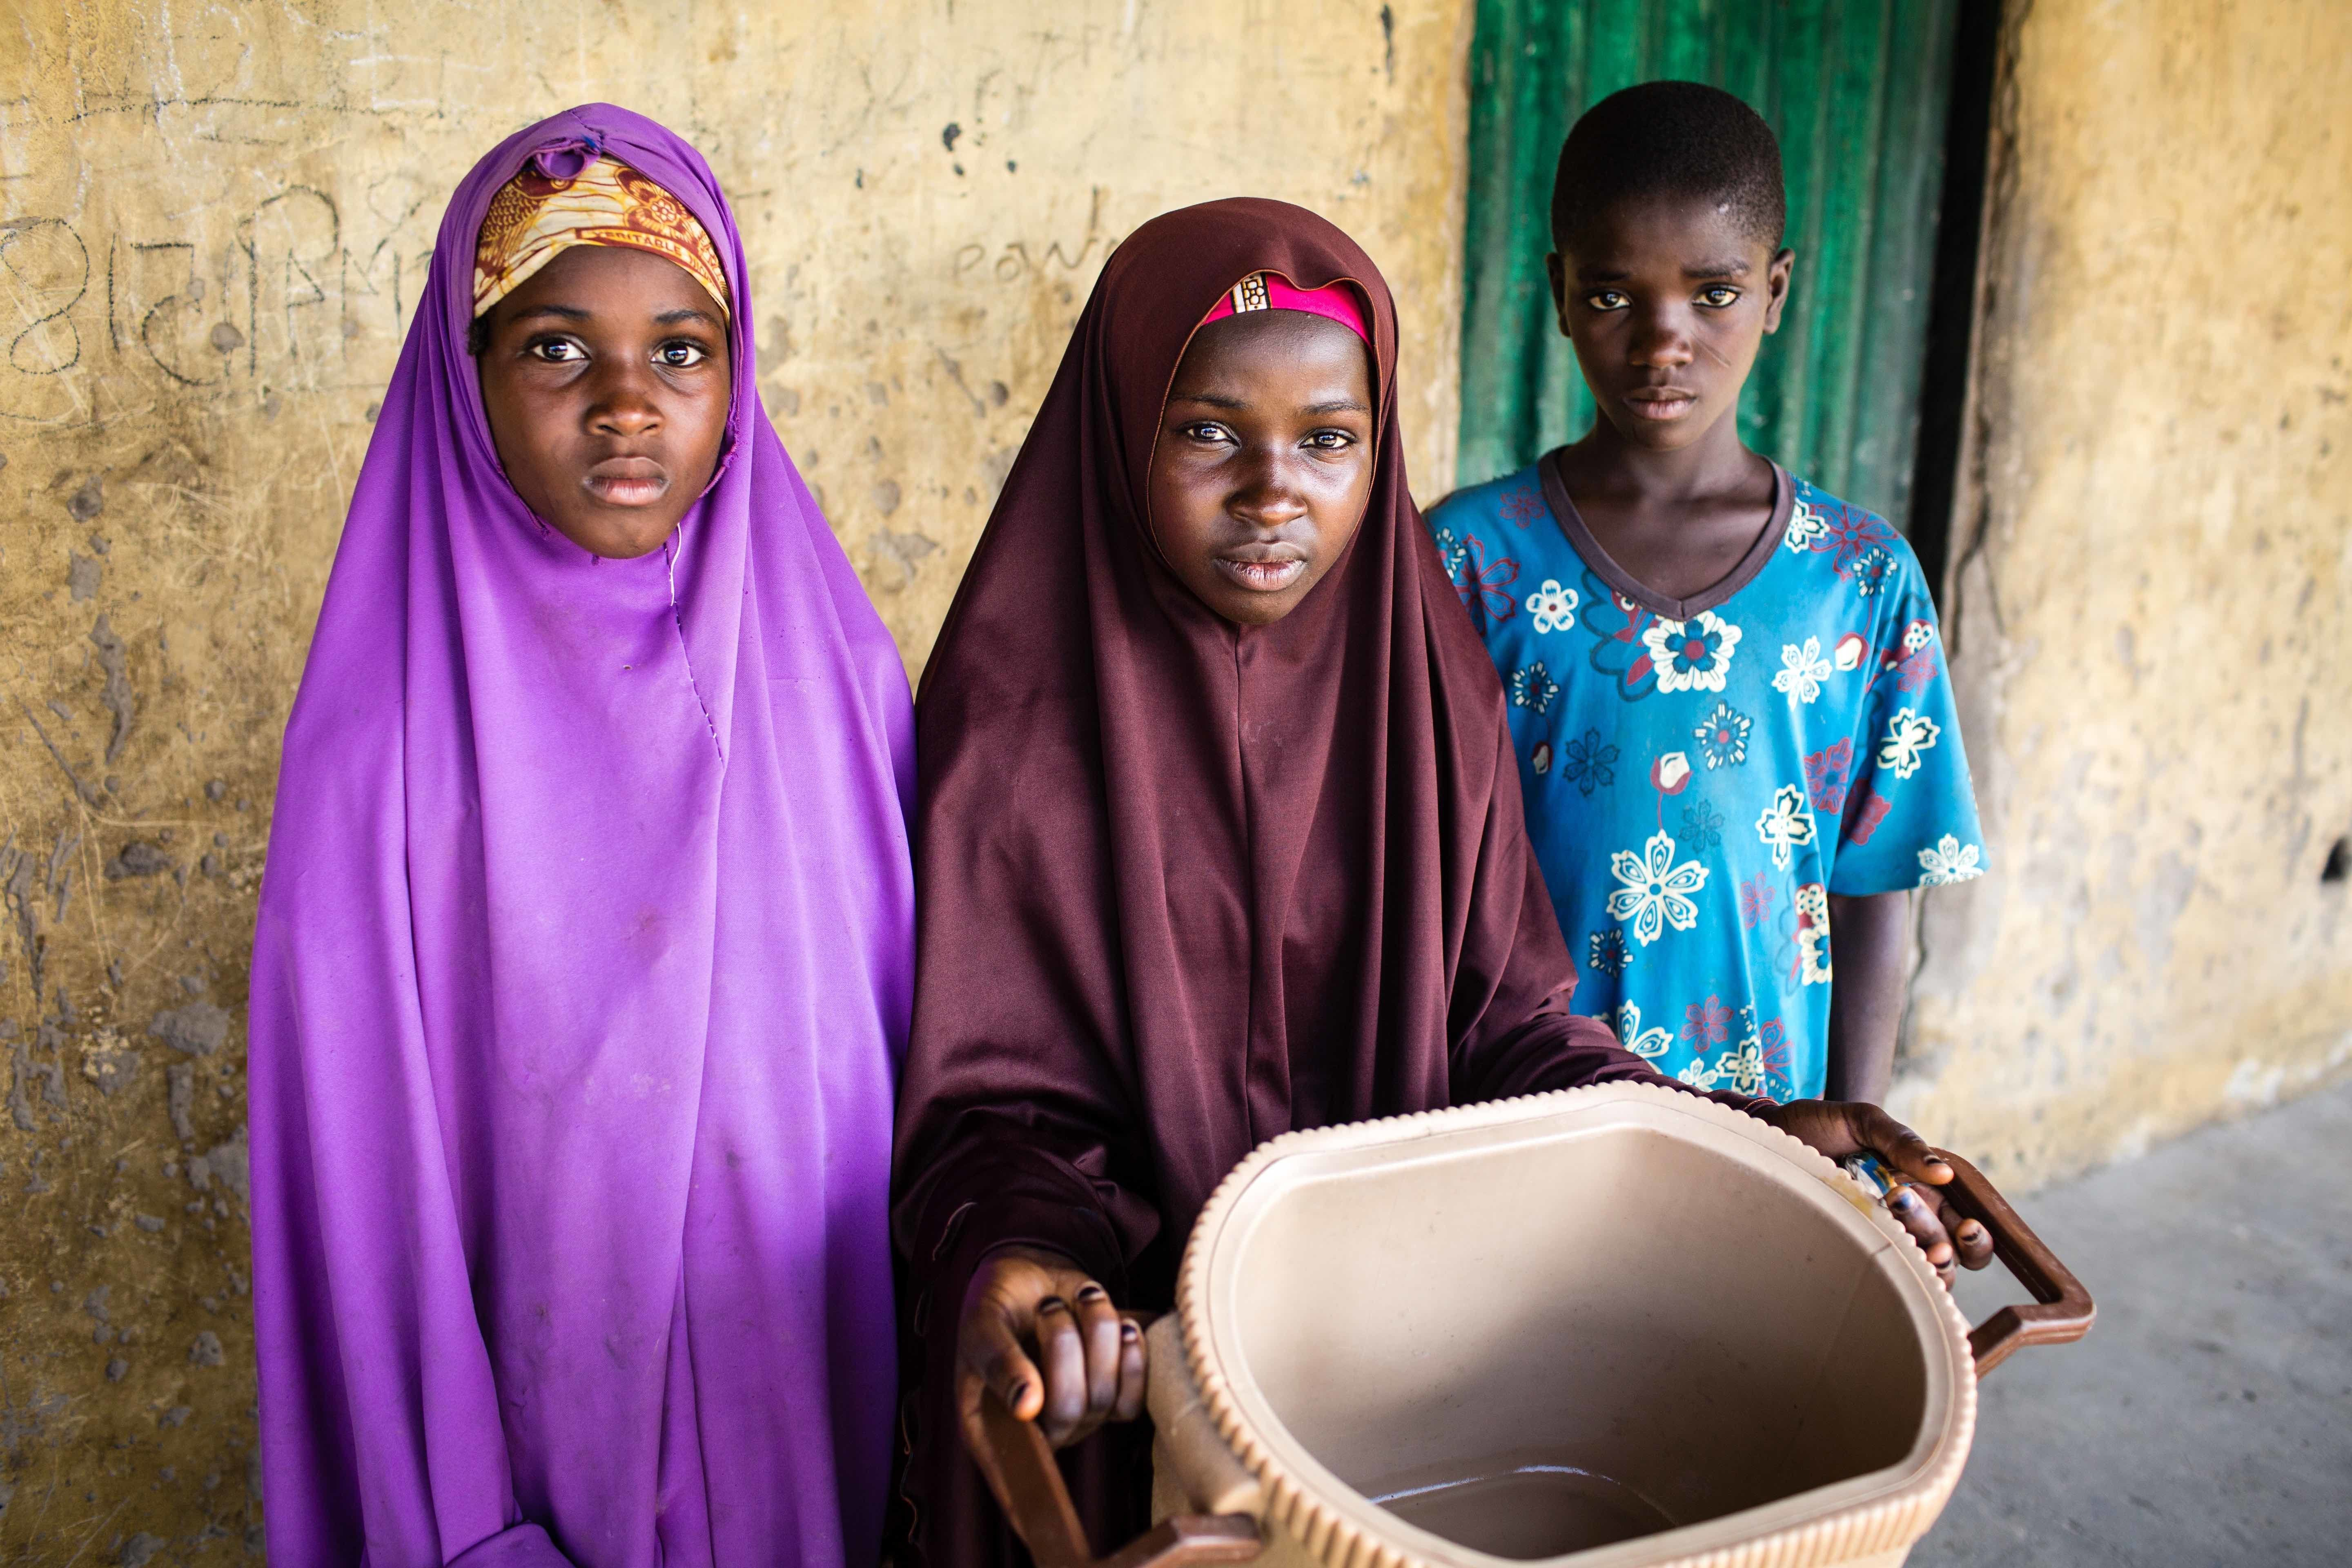 Zulyatu (center), 16, and her younger siblings rarely have enough to eat. Their father died during a Boko Haram raid and thei